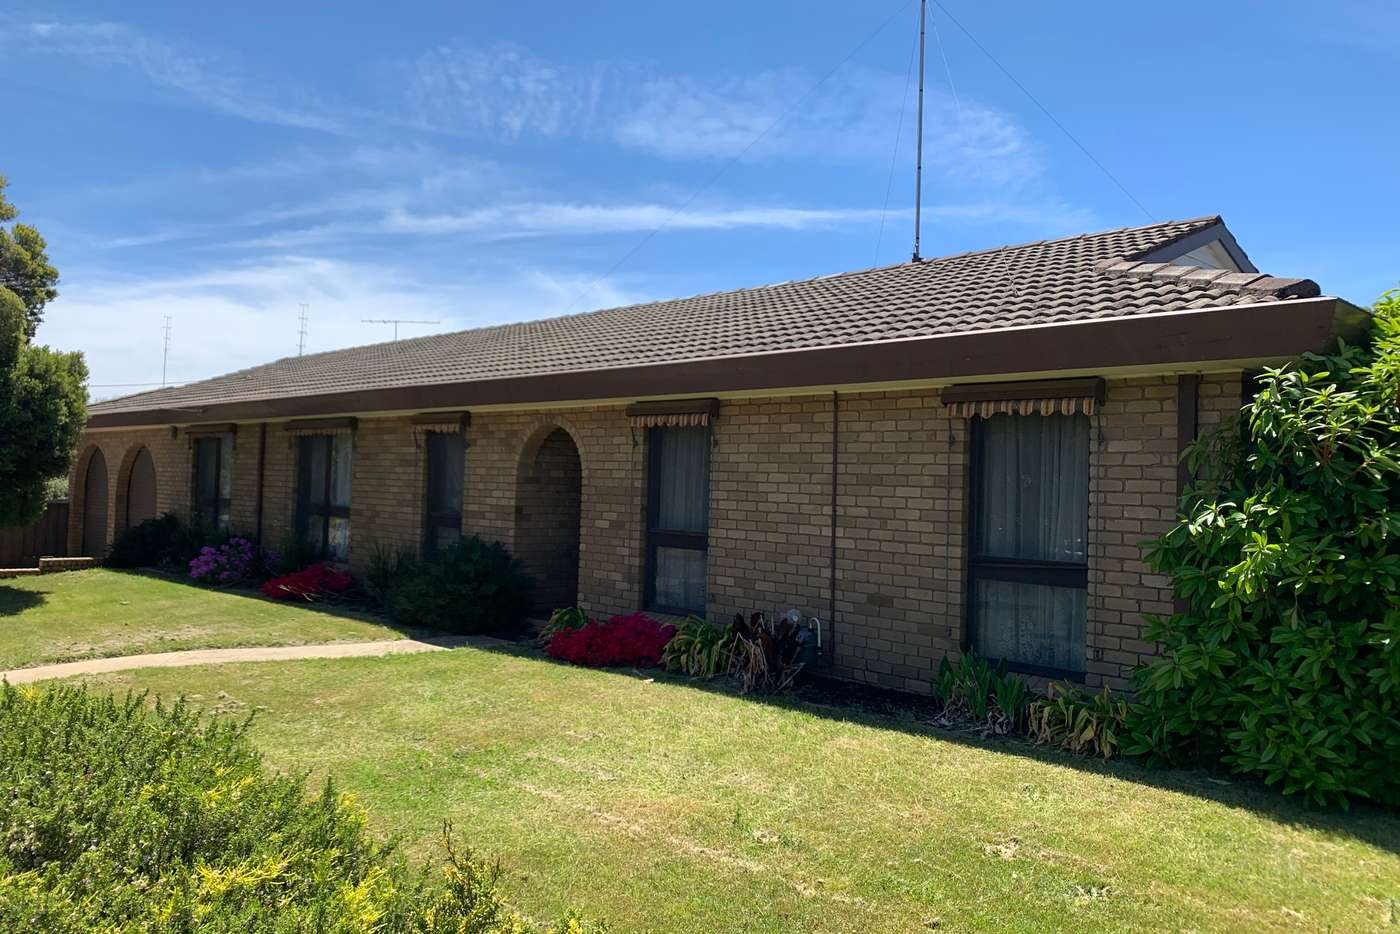 Main view of Homely house listing, 13A Clarkson Street, Sebastopol VIC 3356